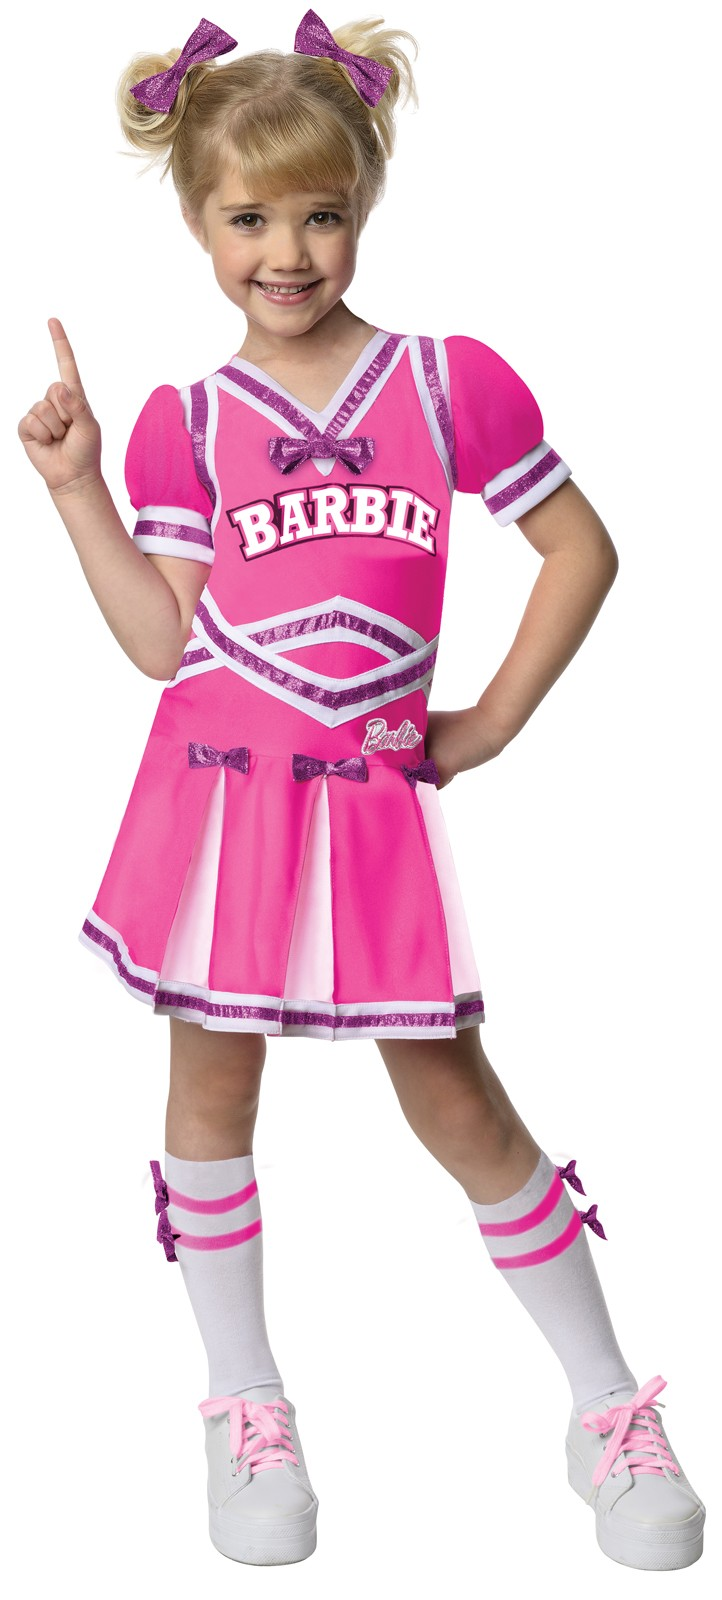 Toys For Cheerleaders : Barbie cheerleader toddler child girl s costume